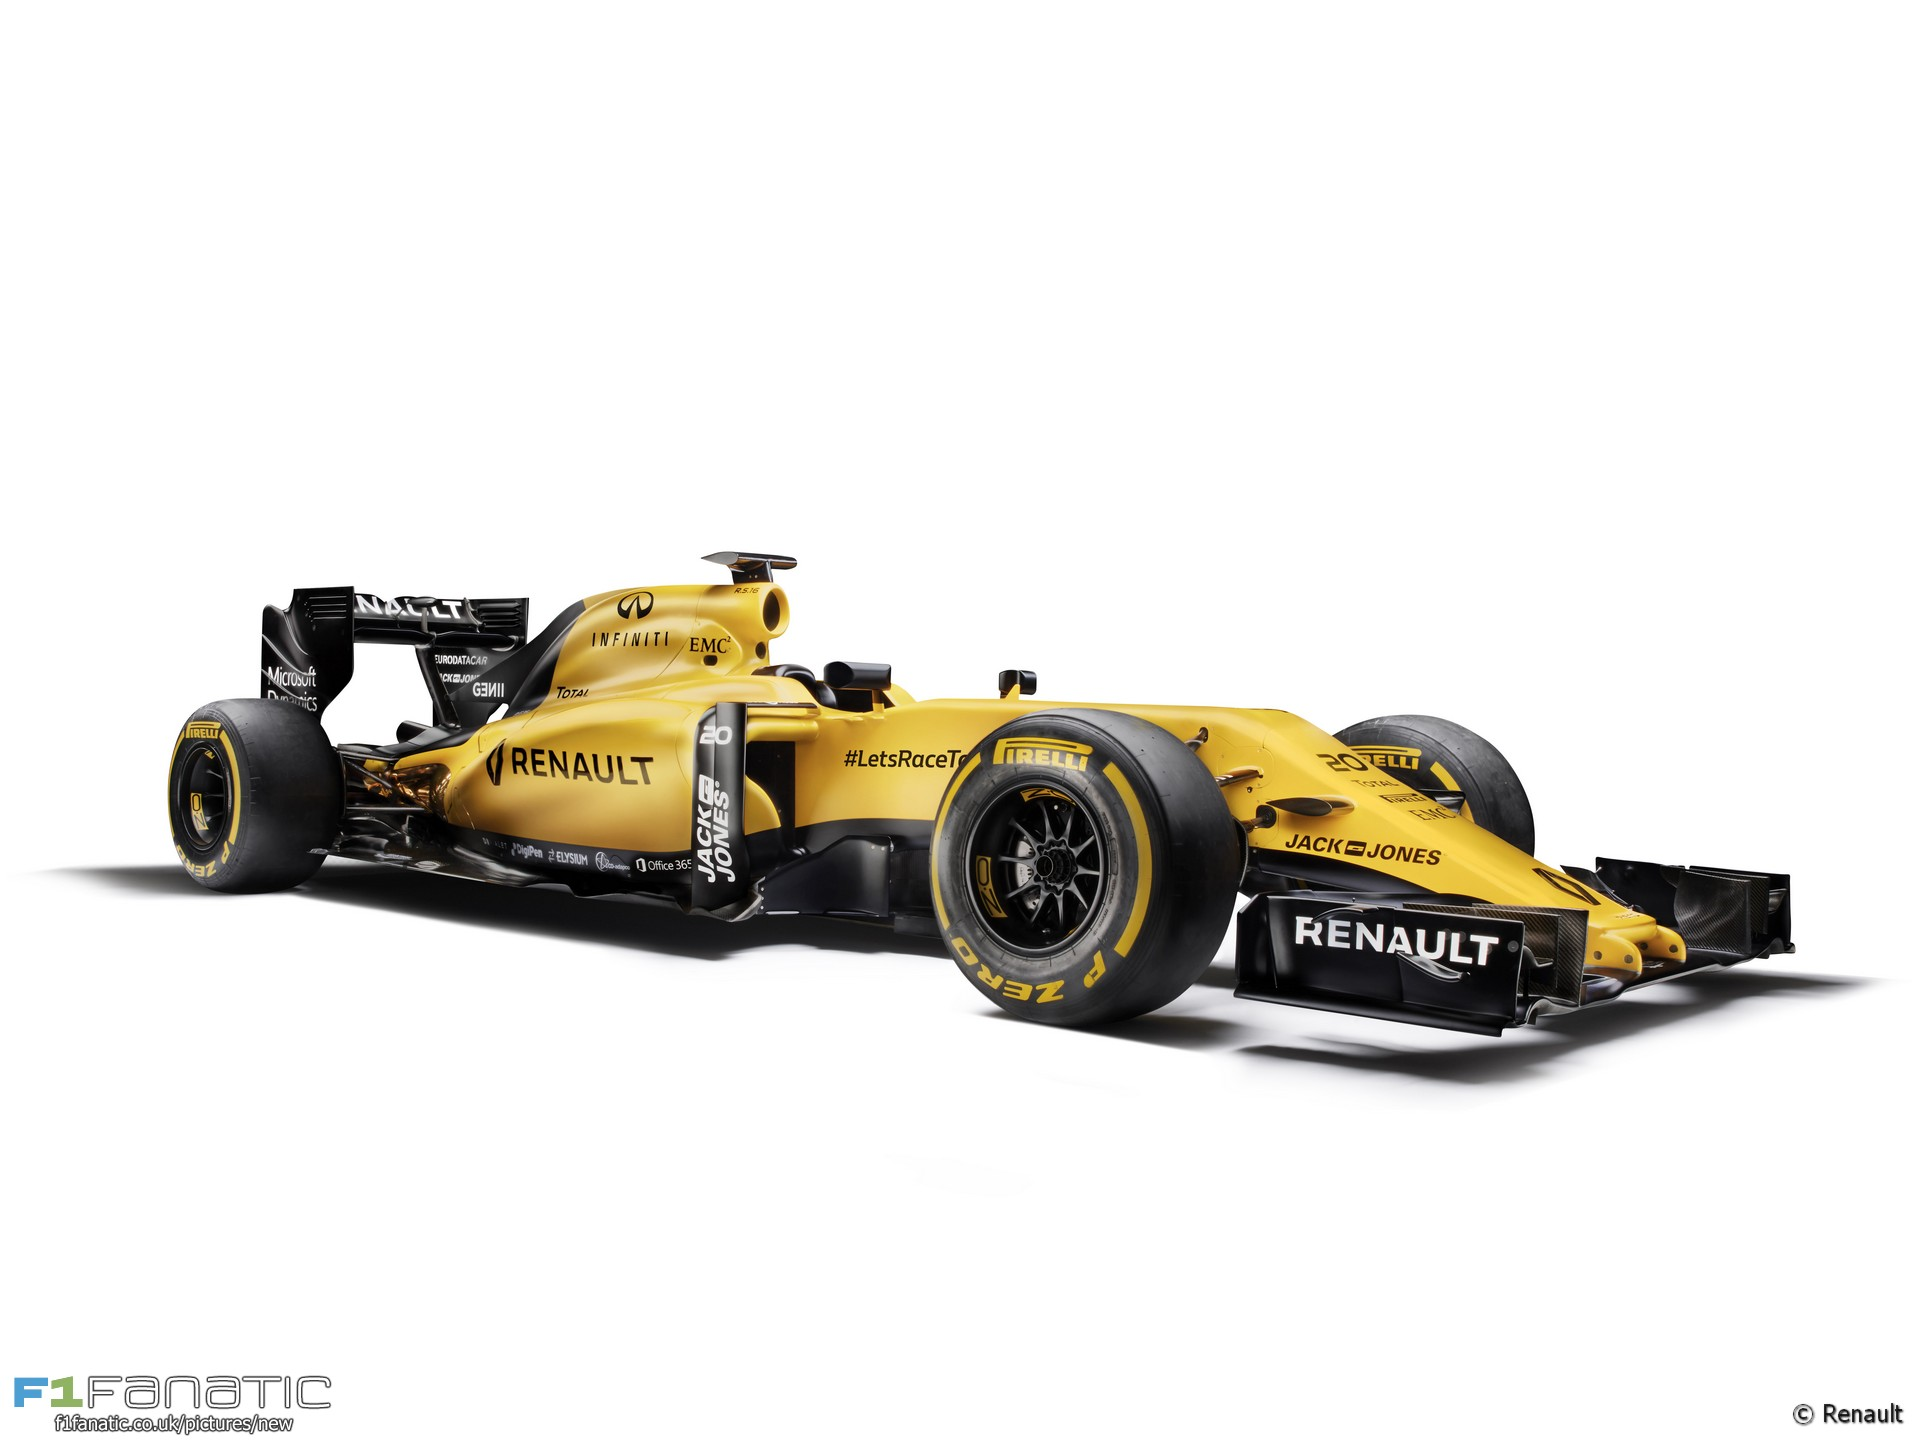 Which Team Has The Best Looking Car For Fanatic